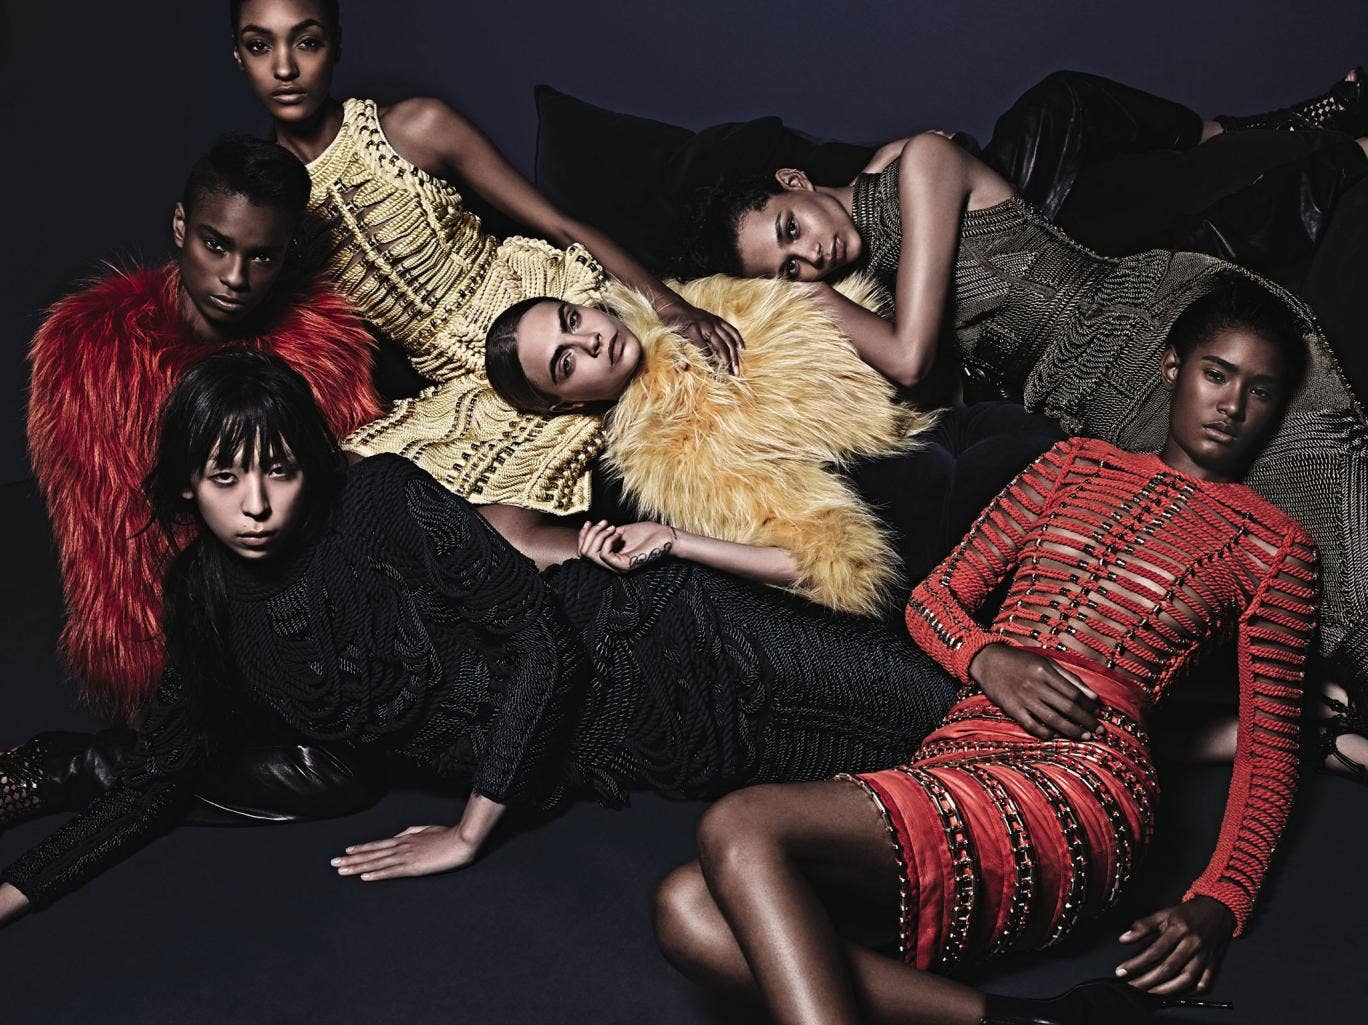 Balmain's autumn/winter 2014 campaign, shot by Mario Sorrenti and featuring Binx Walton, Cara Delevingne, Jourdan Dunn, Ysaunny Brito, Issa Lish and Kayla Scott